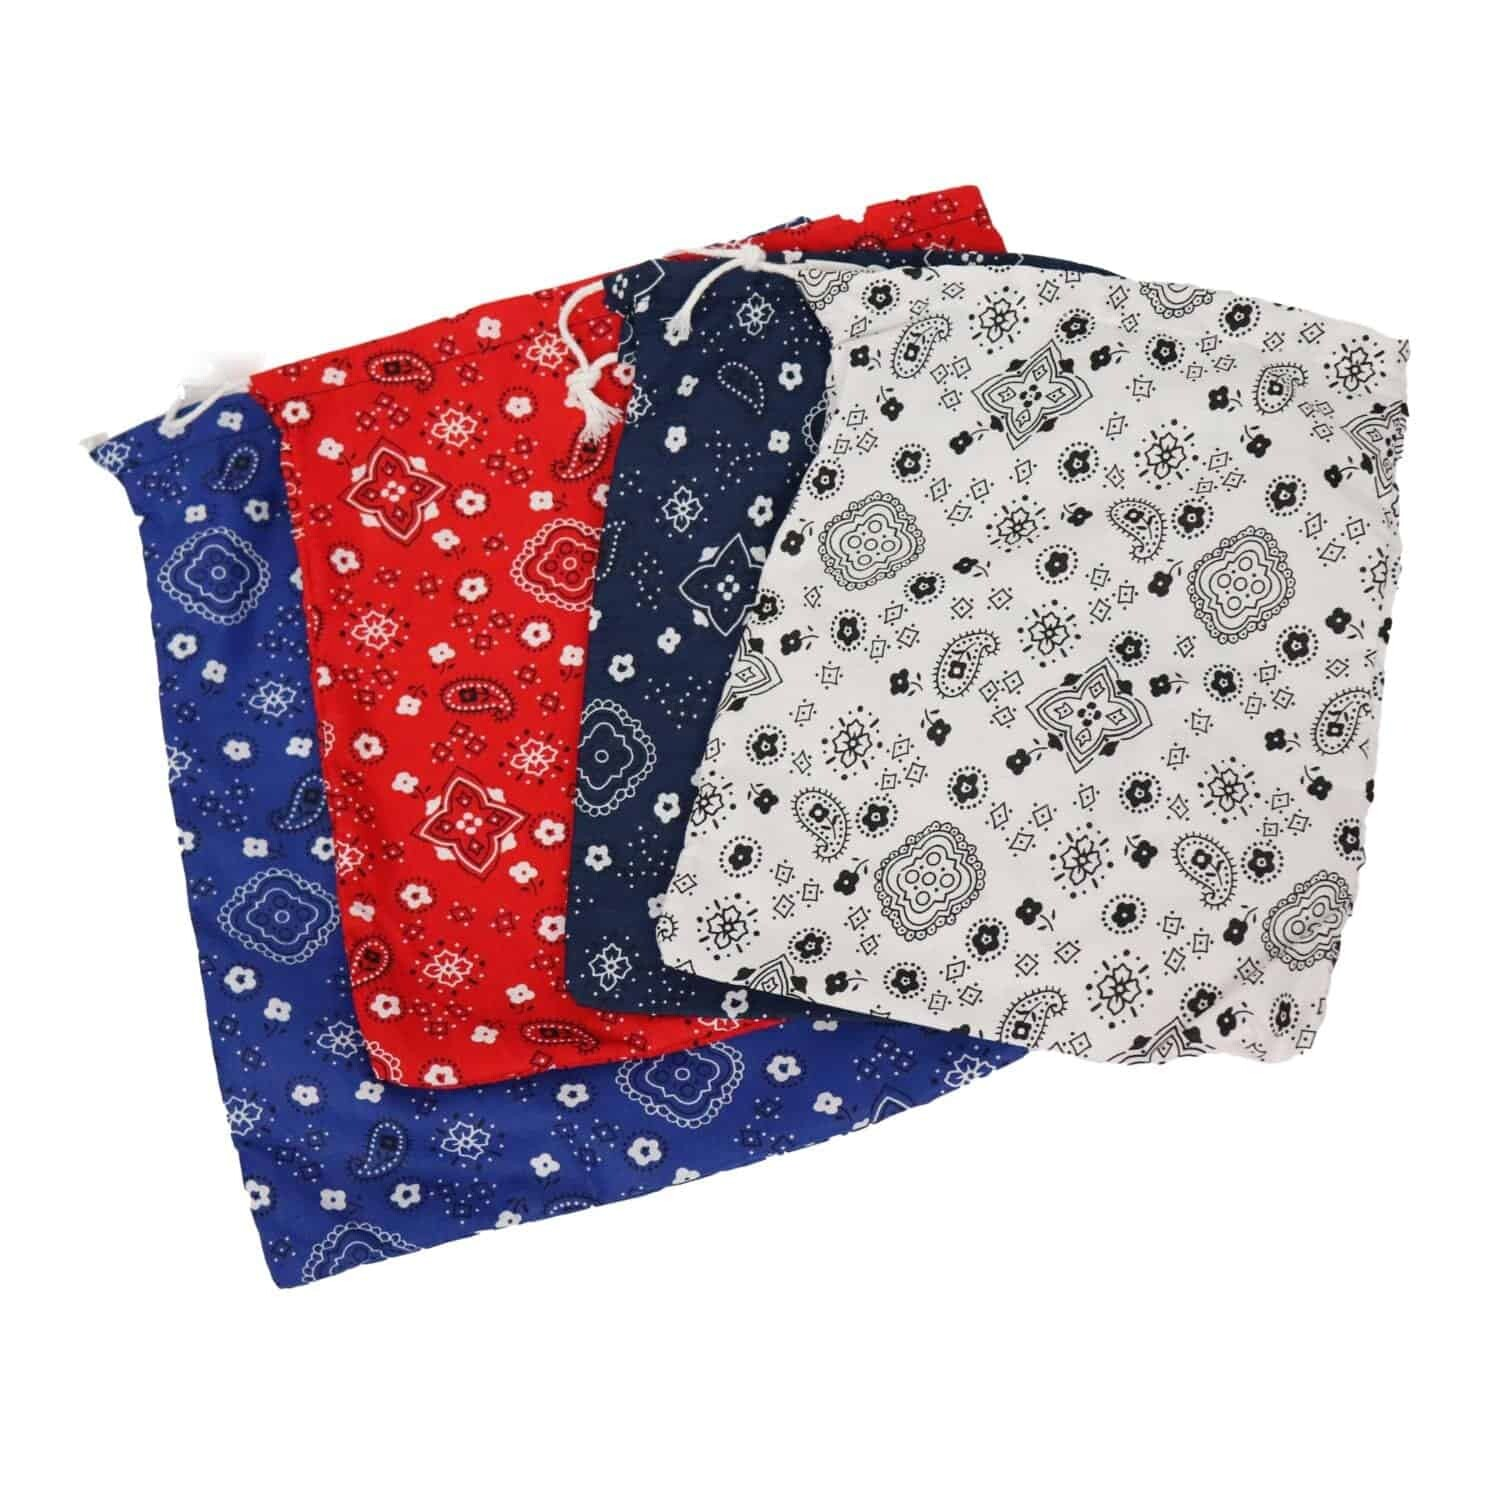 Affordable Organizational Tool Bandana Print Drawstring Bag in Four Sizes Music Therapy Parents